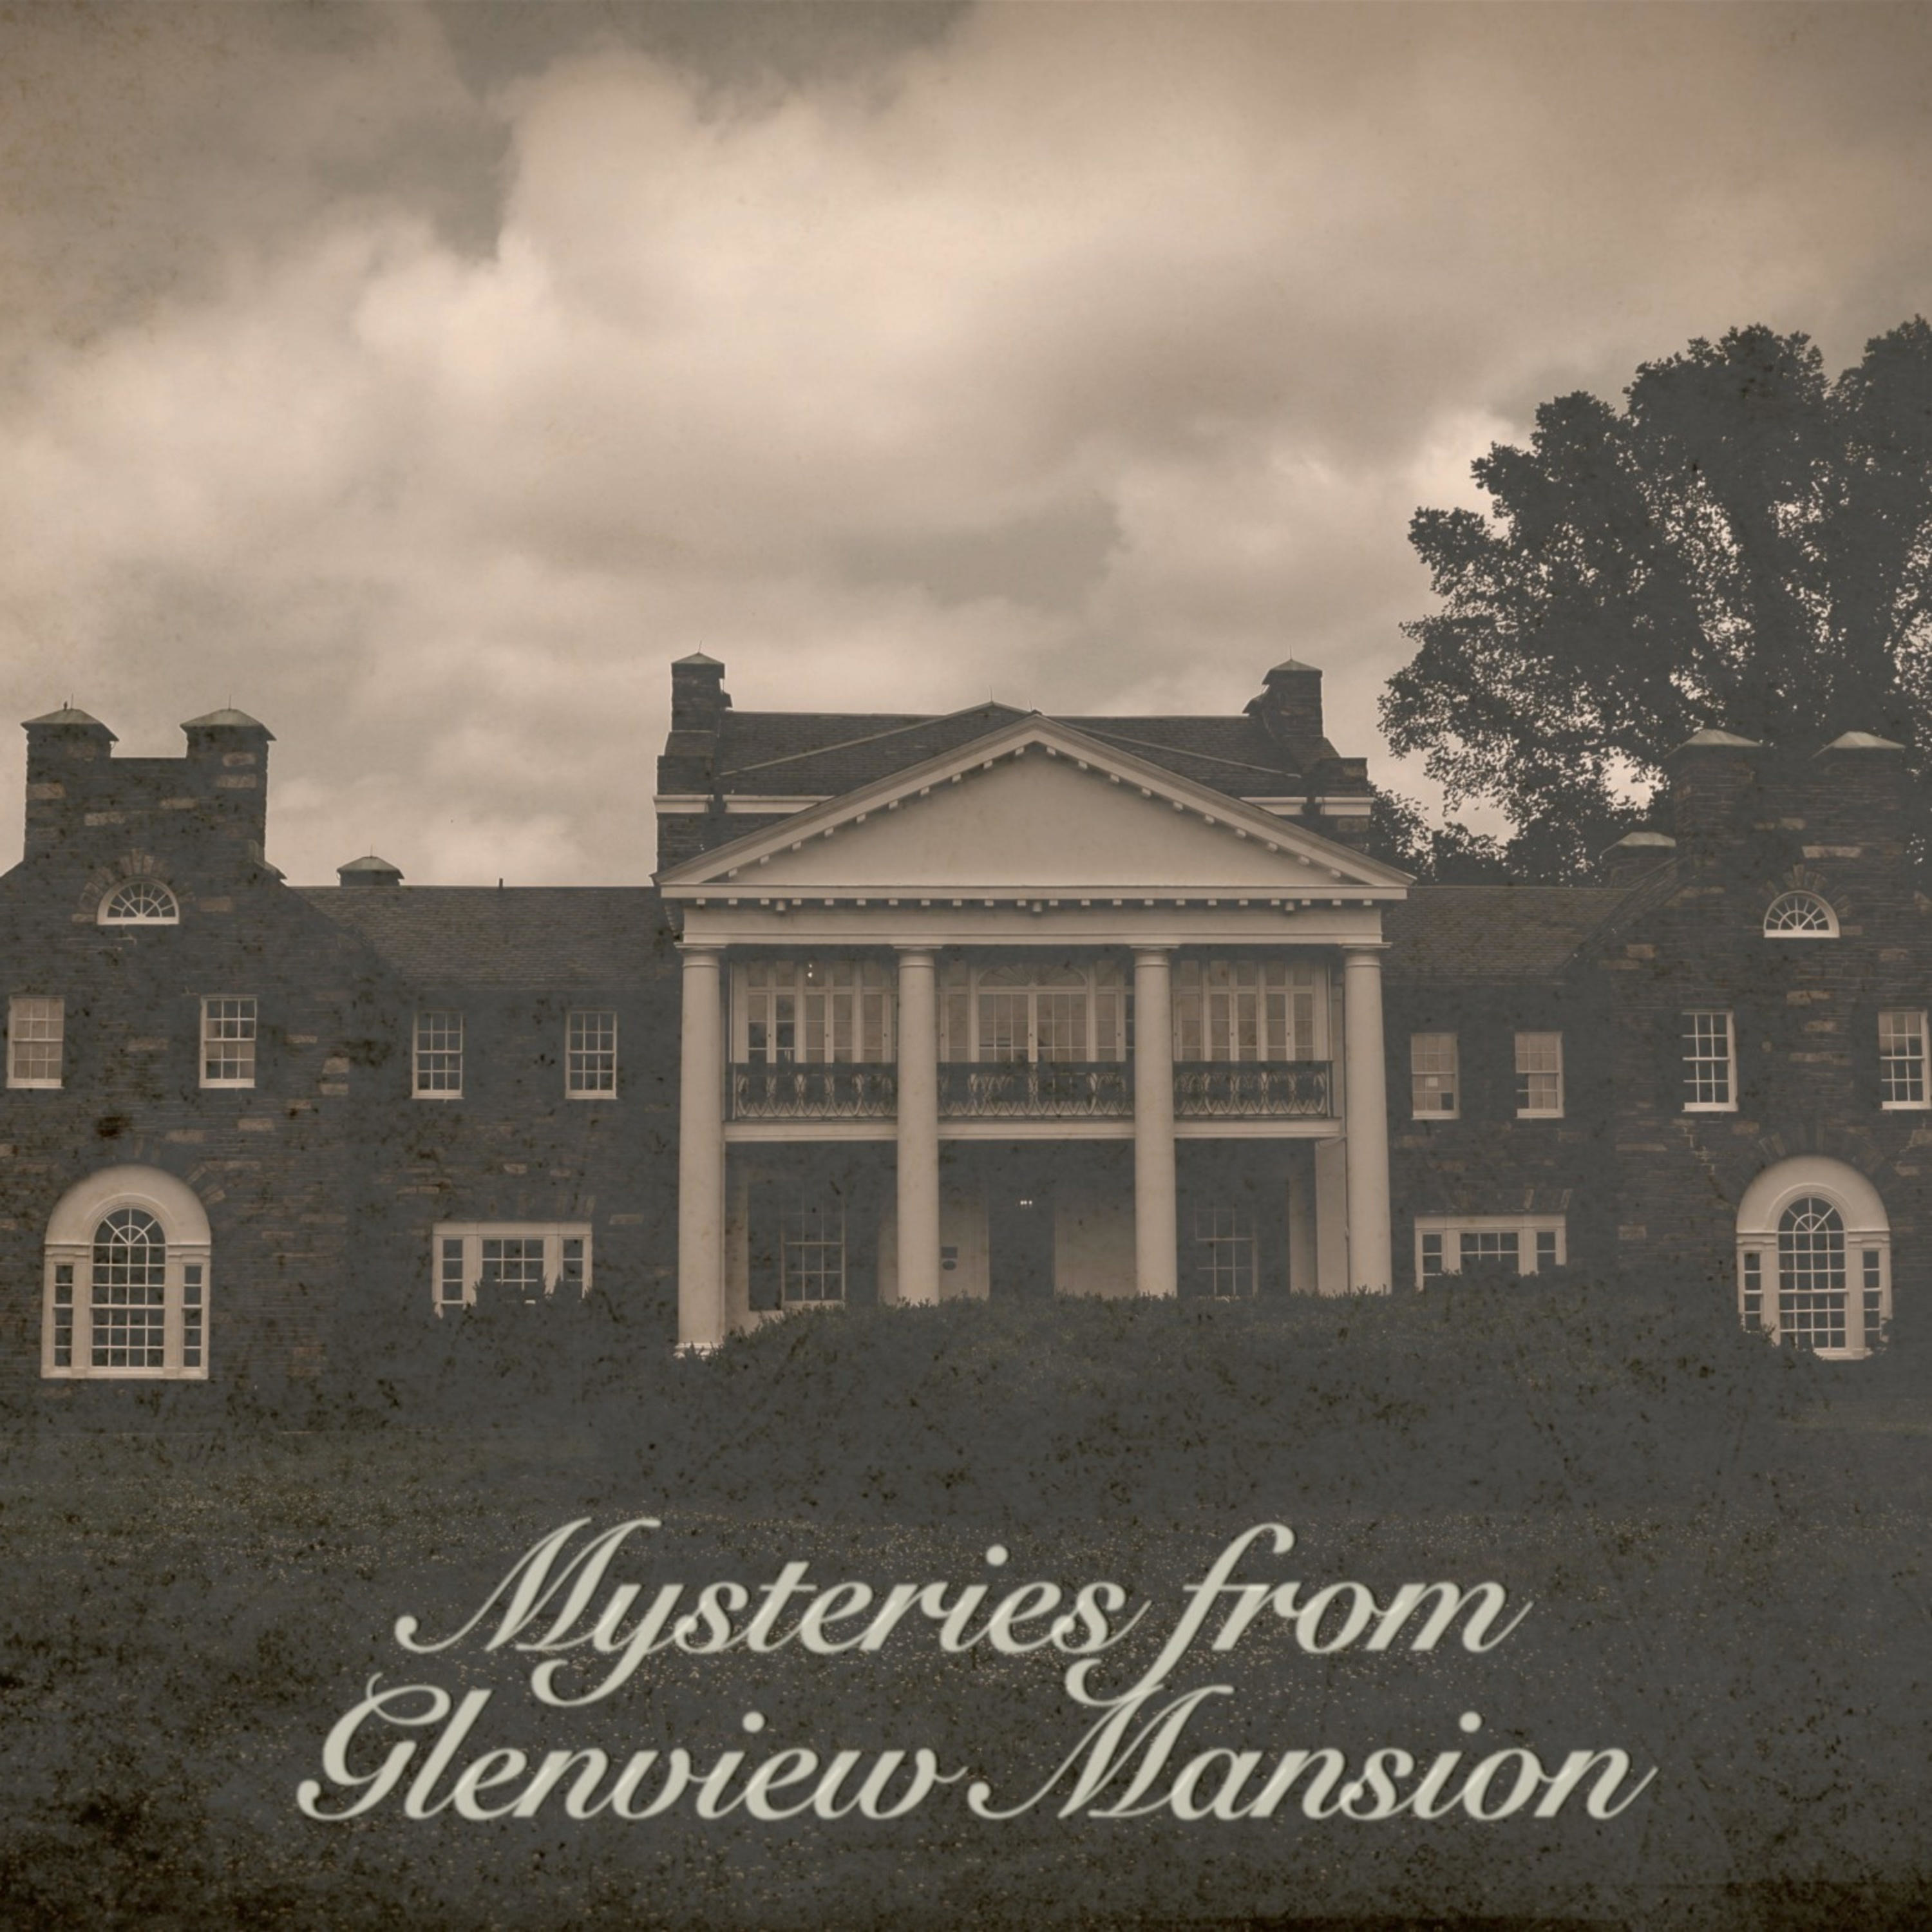 Mysteries from Glenview Mansion